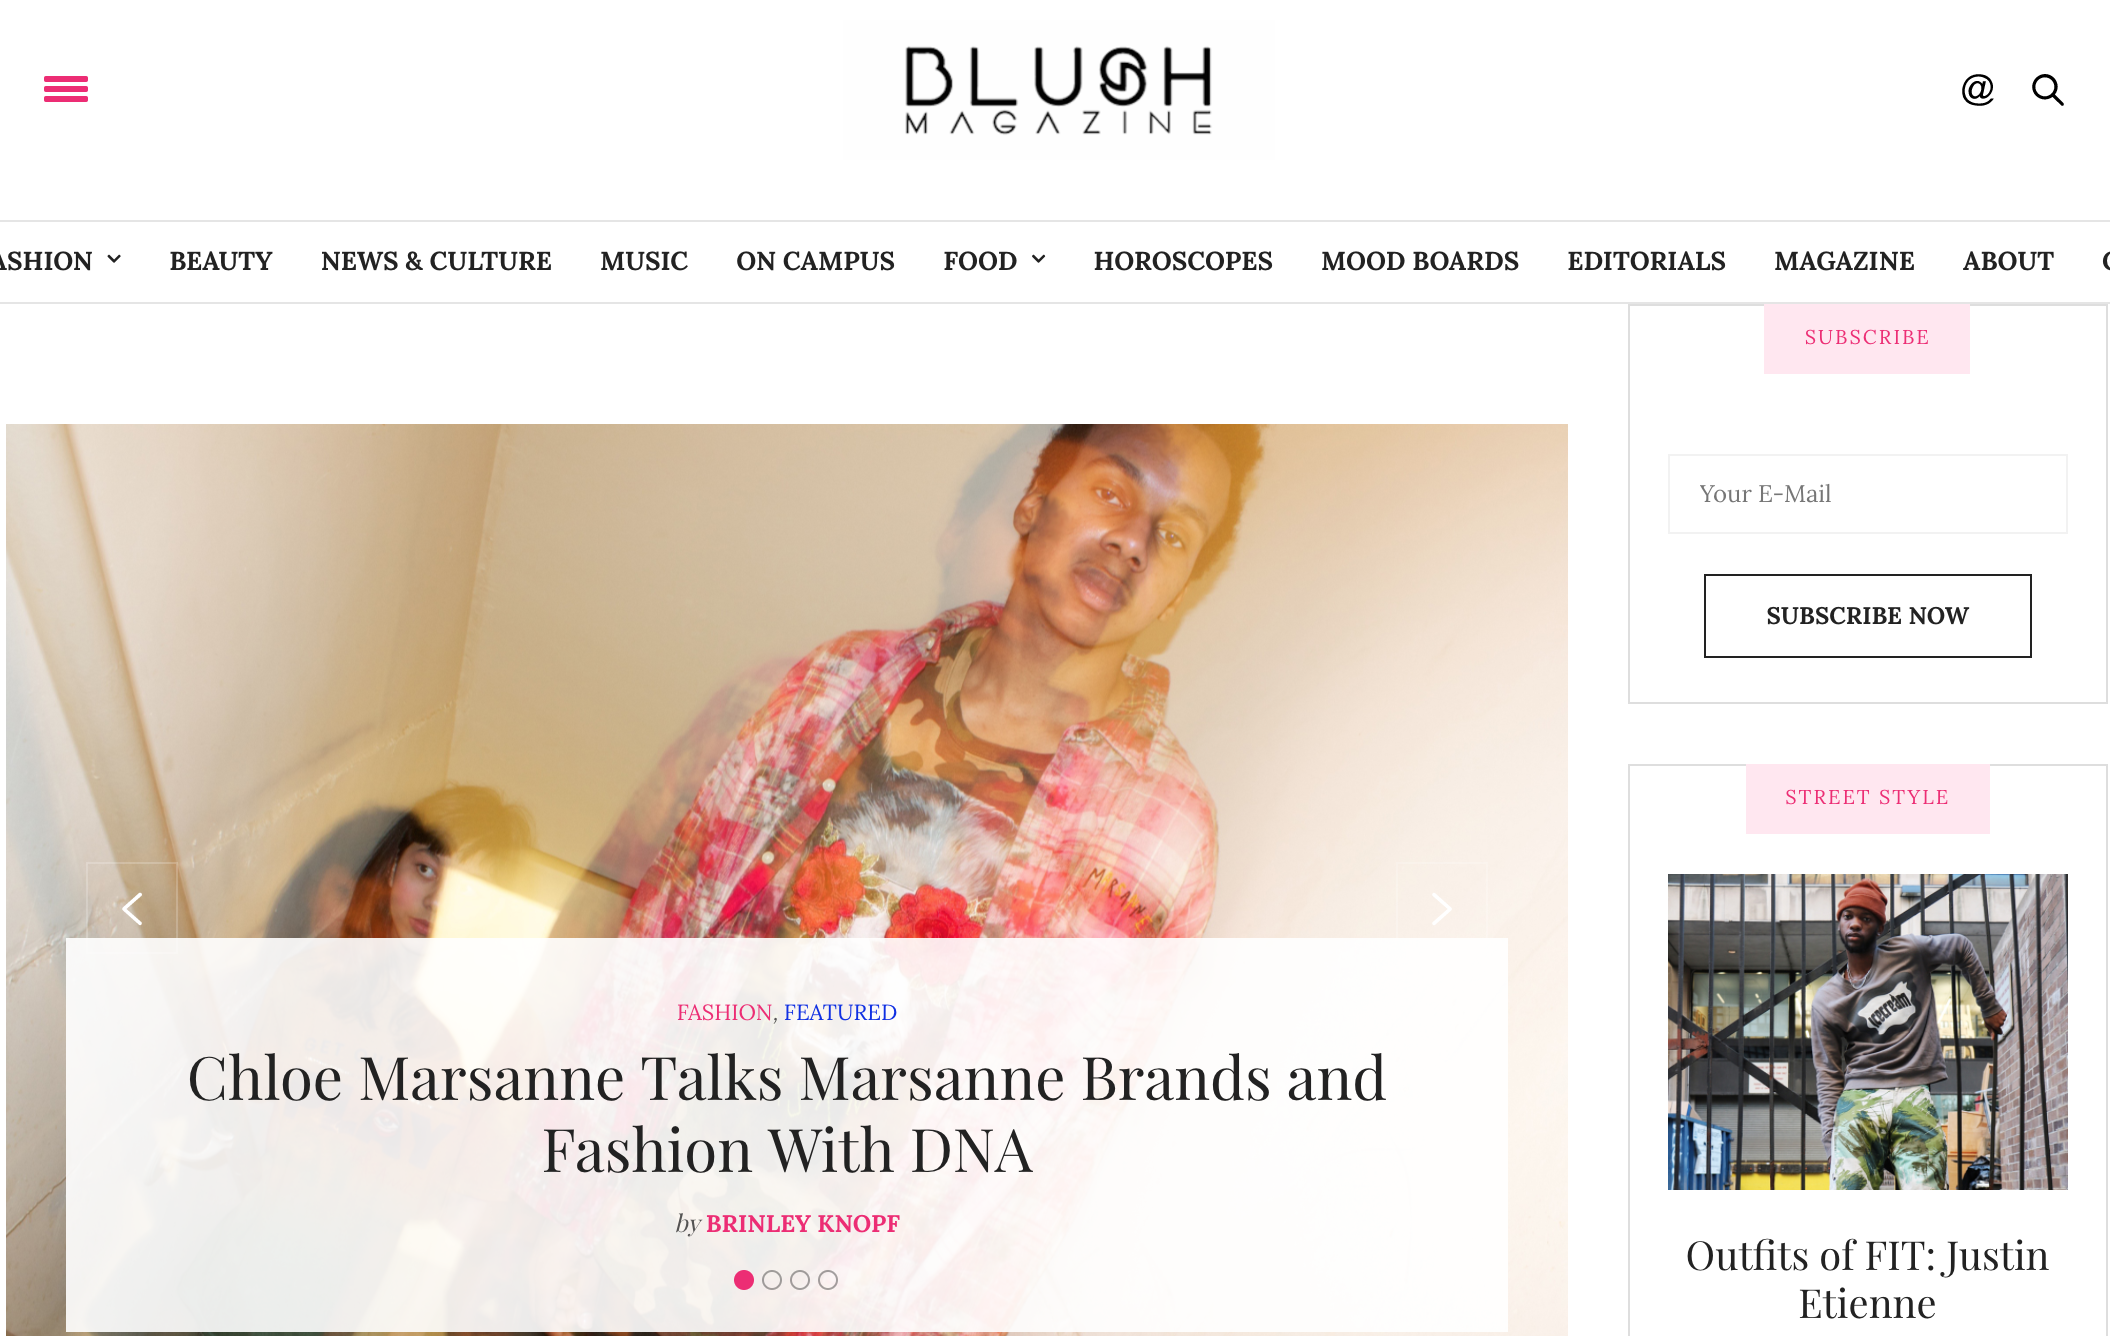 BLUSH MAGAZINE - FEATURES EXCLUSIVE INTERVIEW AND REVIEW WITH MARSANNE BRANDS